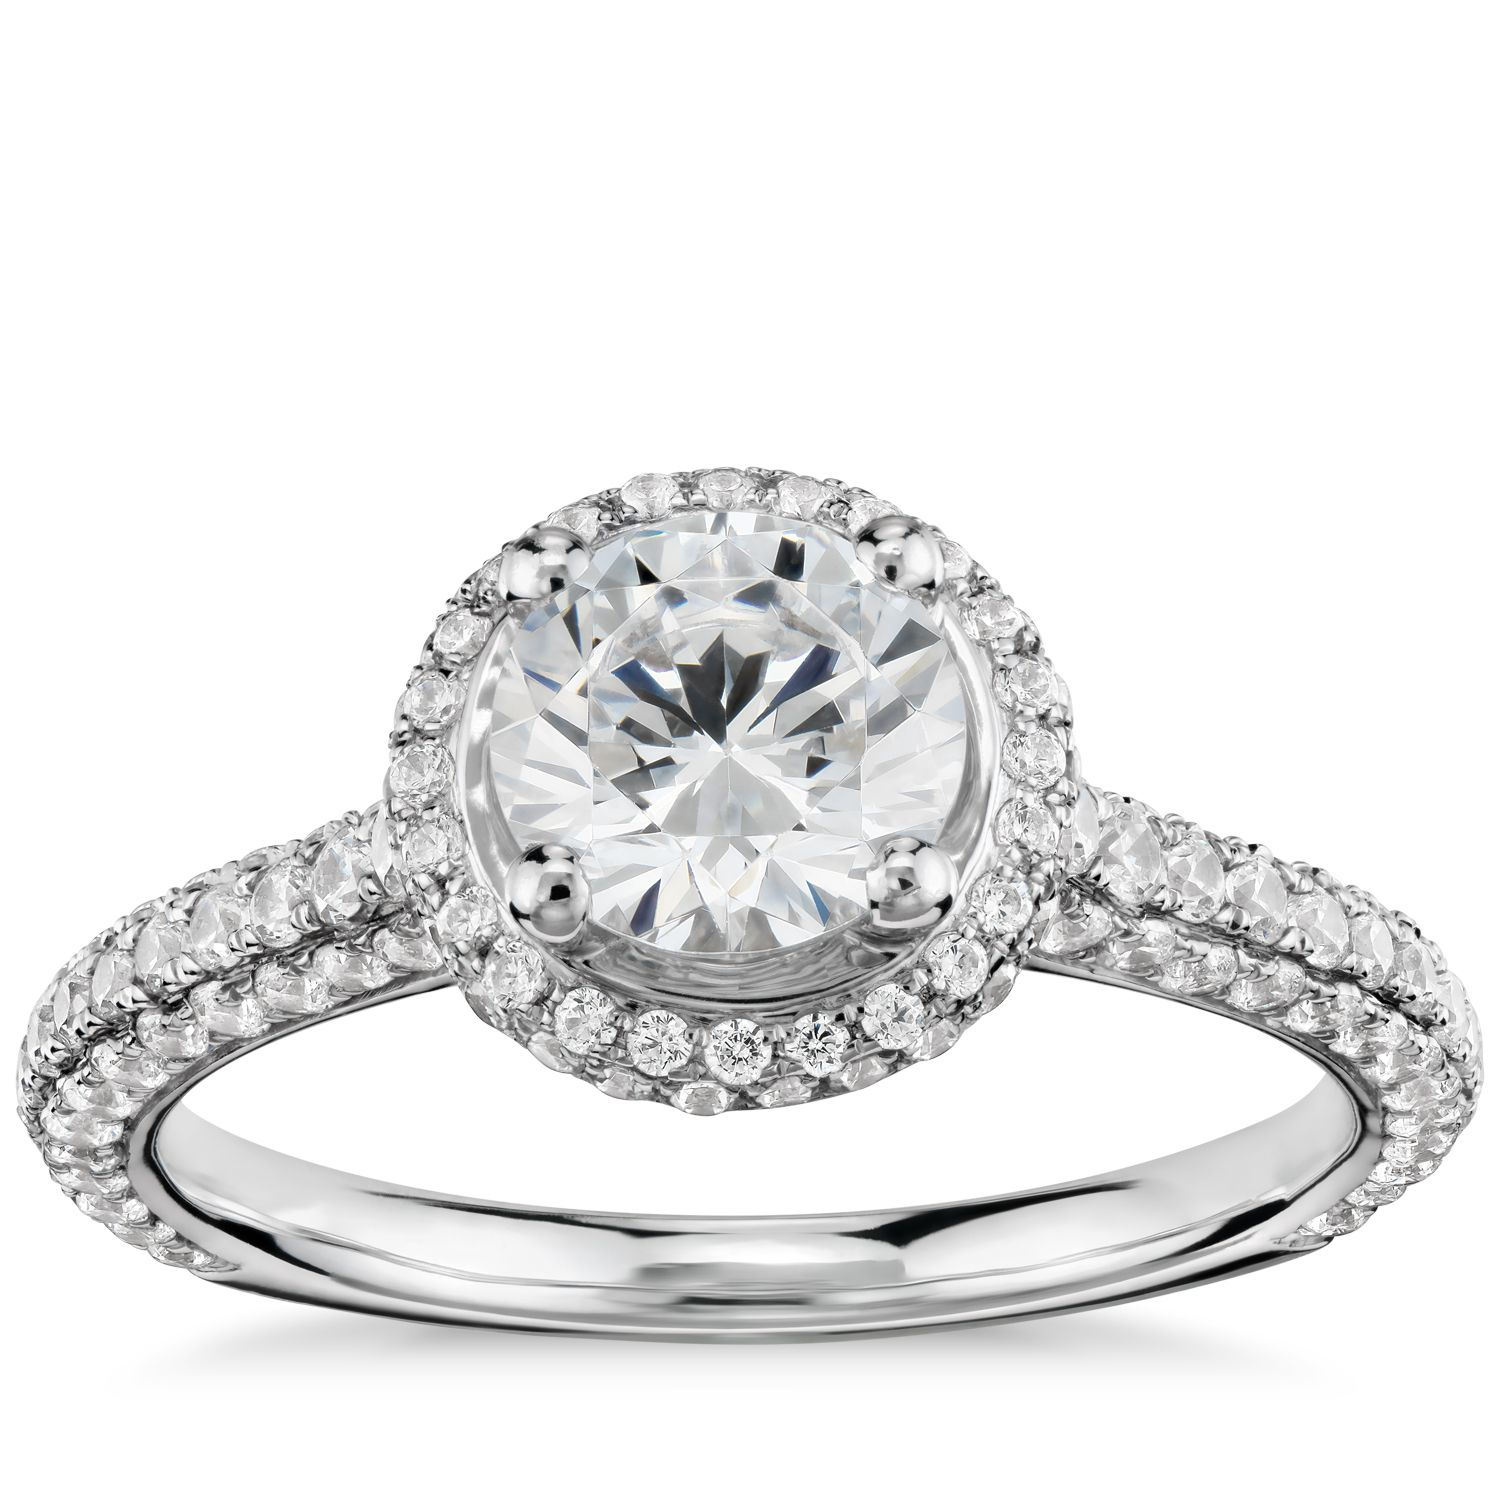 10 Engagement Rings That Will Make You Say Yes Rustic